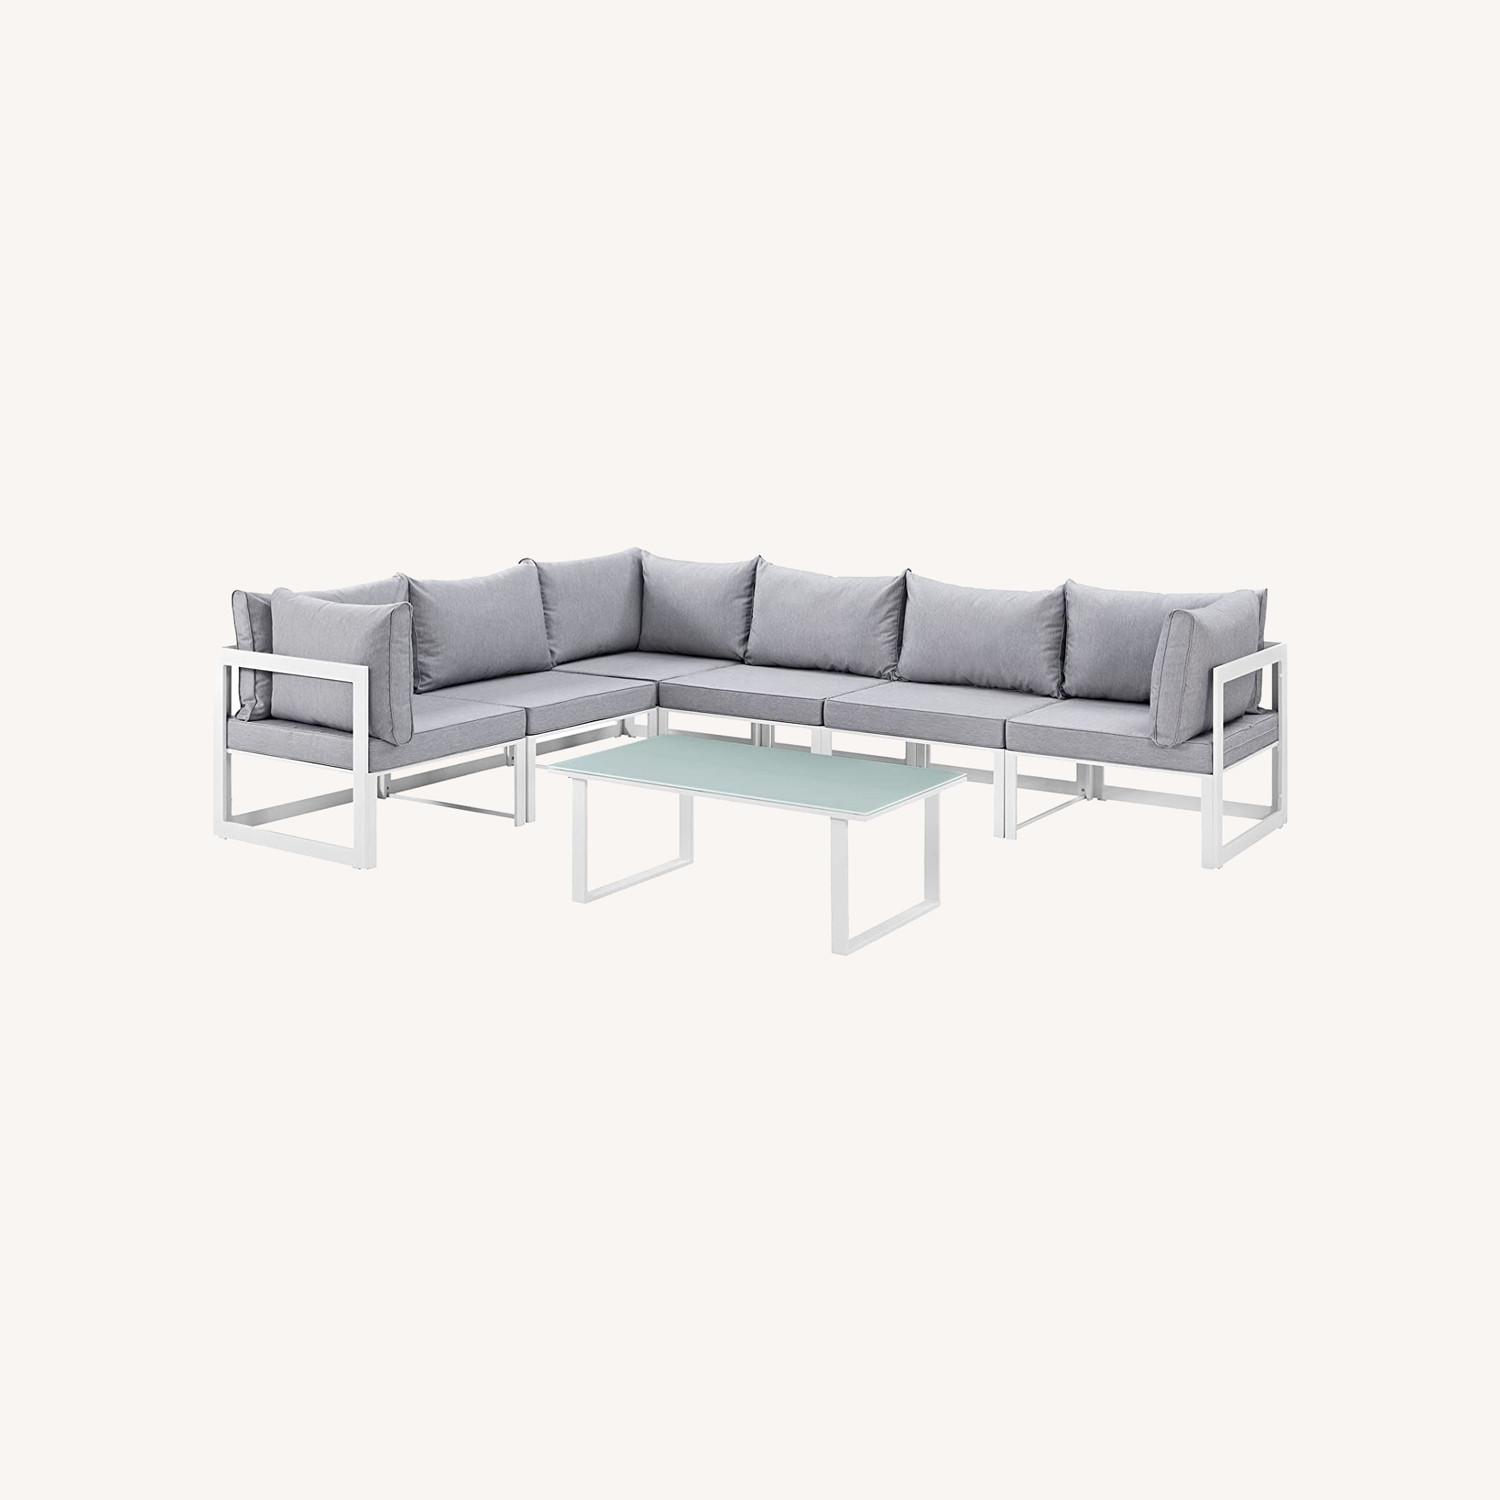 7-Piece Outdoor Sectional In Gray Fabric Cushion - image-7